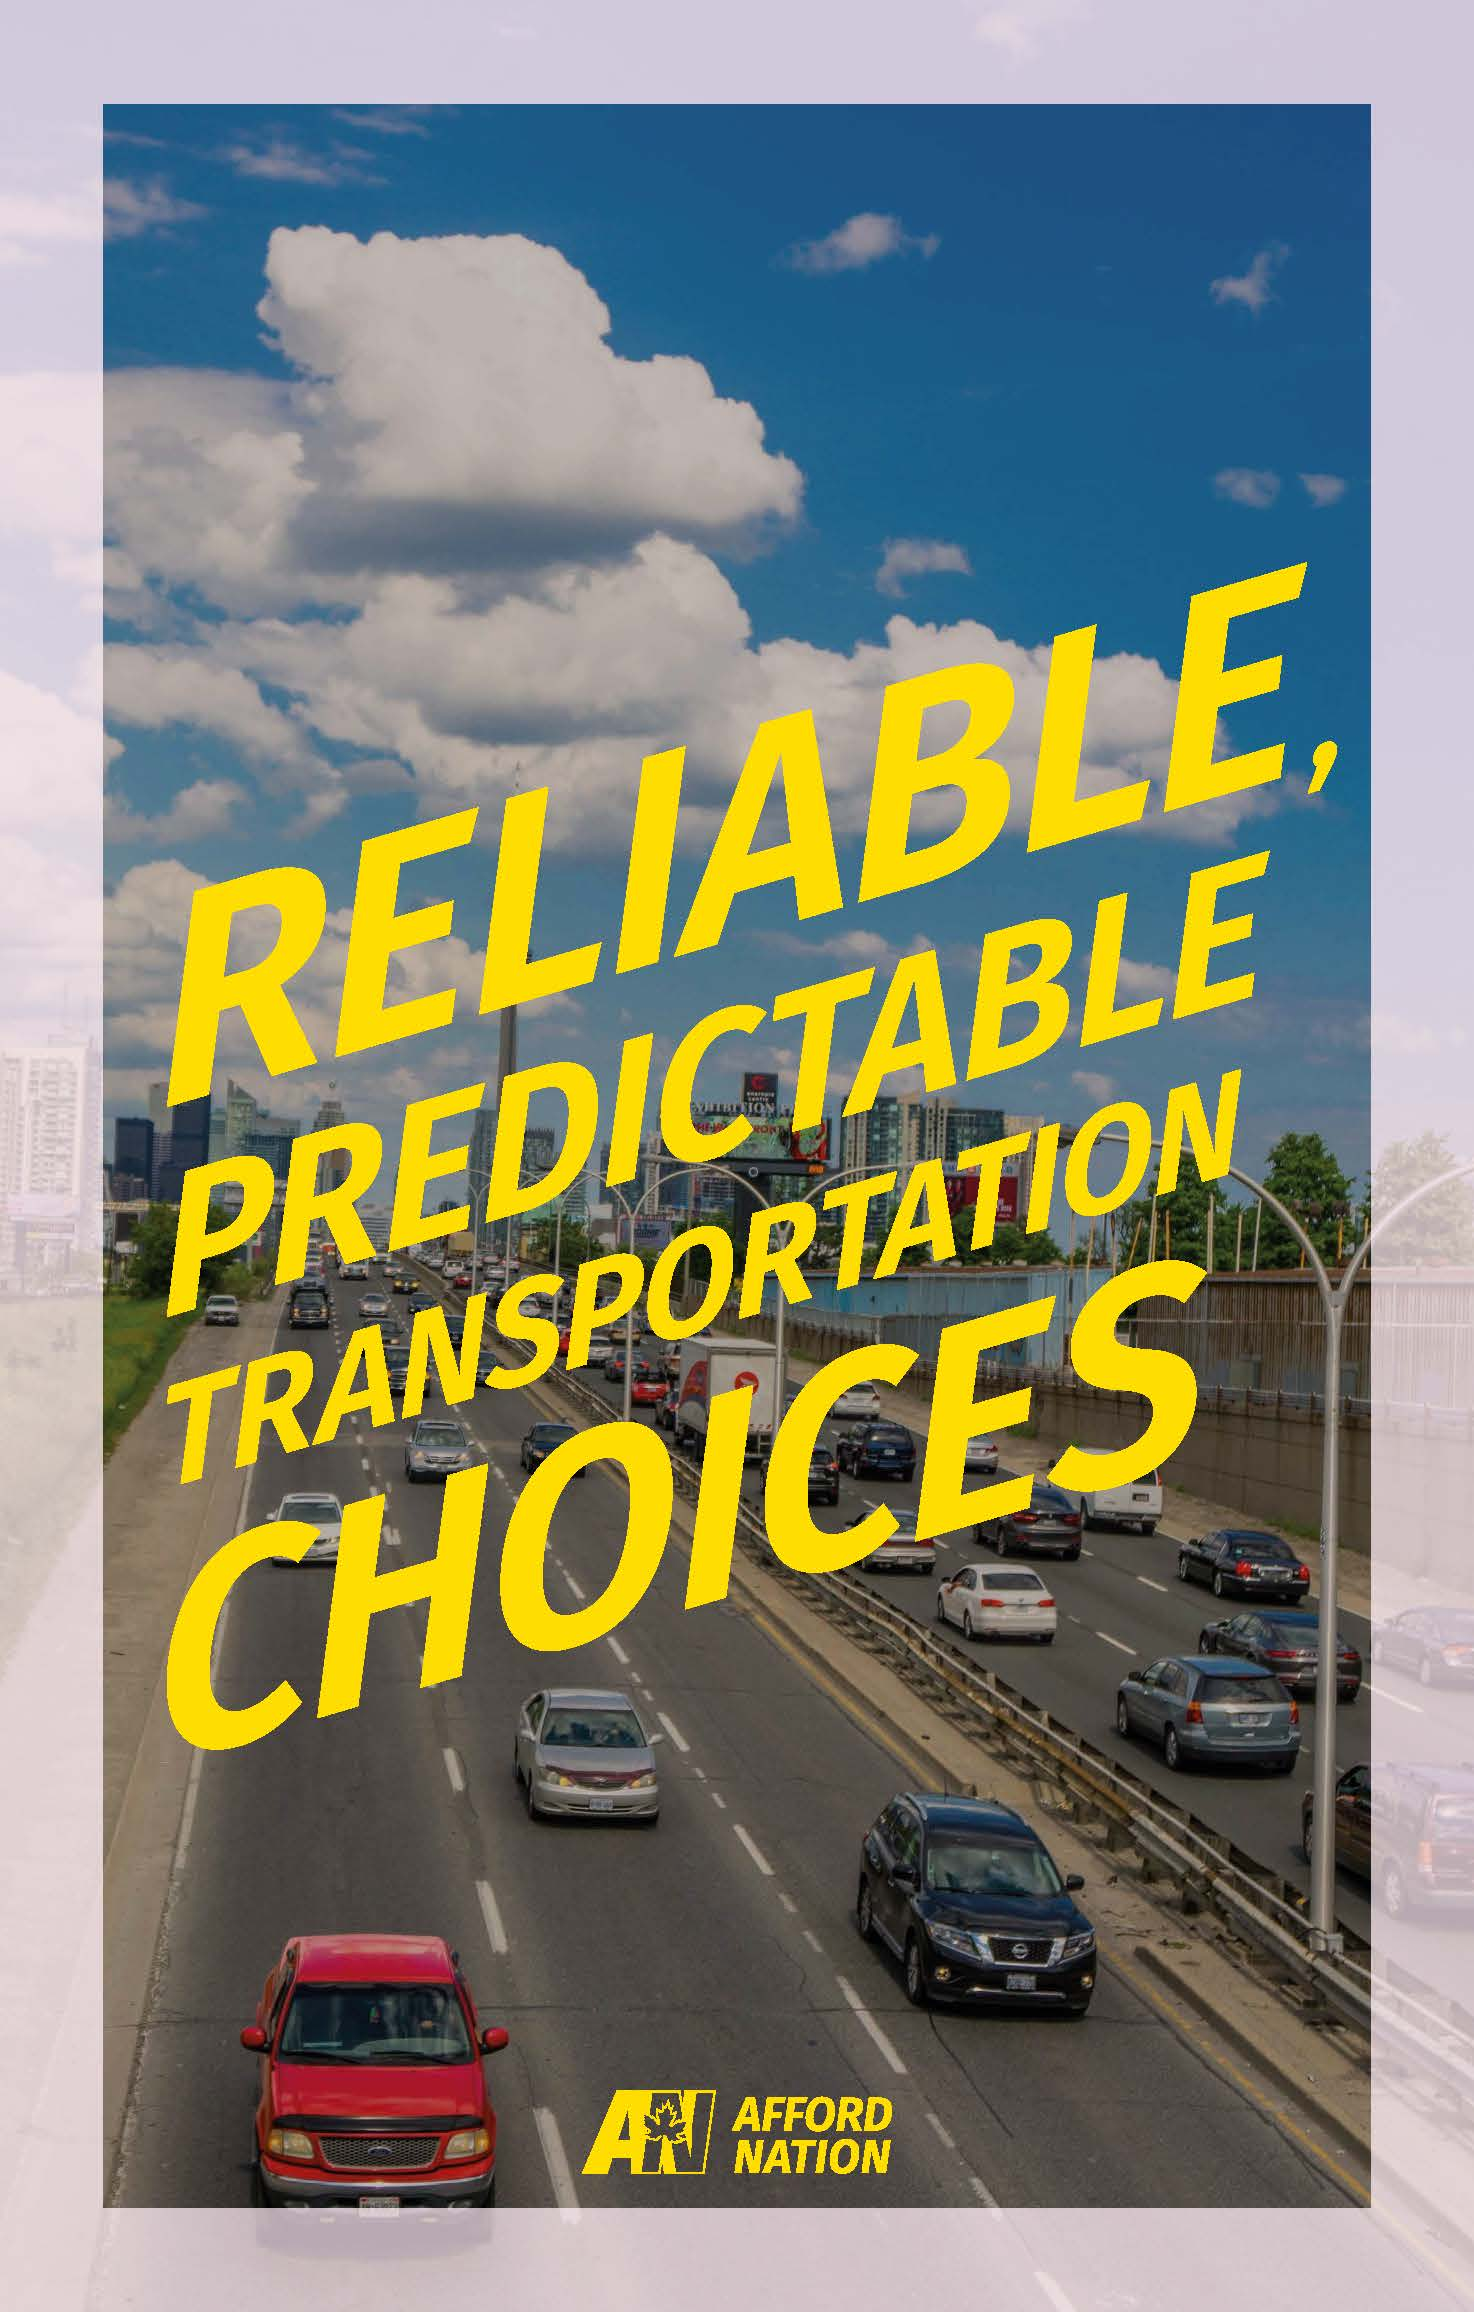 Reliable, predictable transportation choices